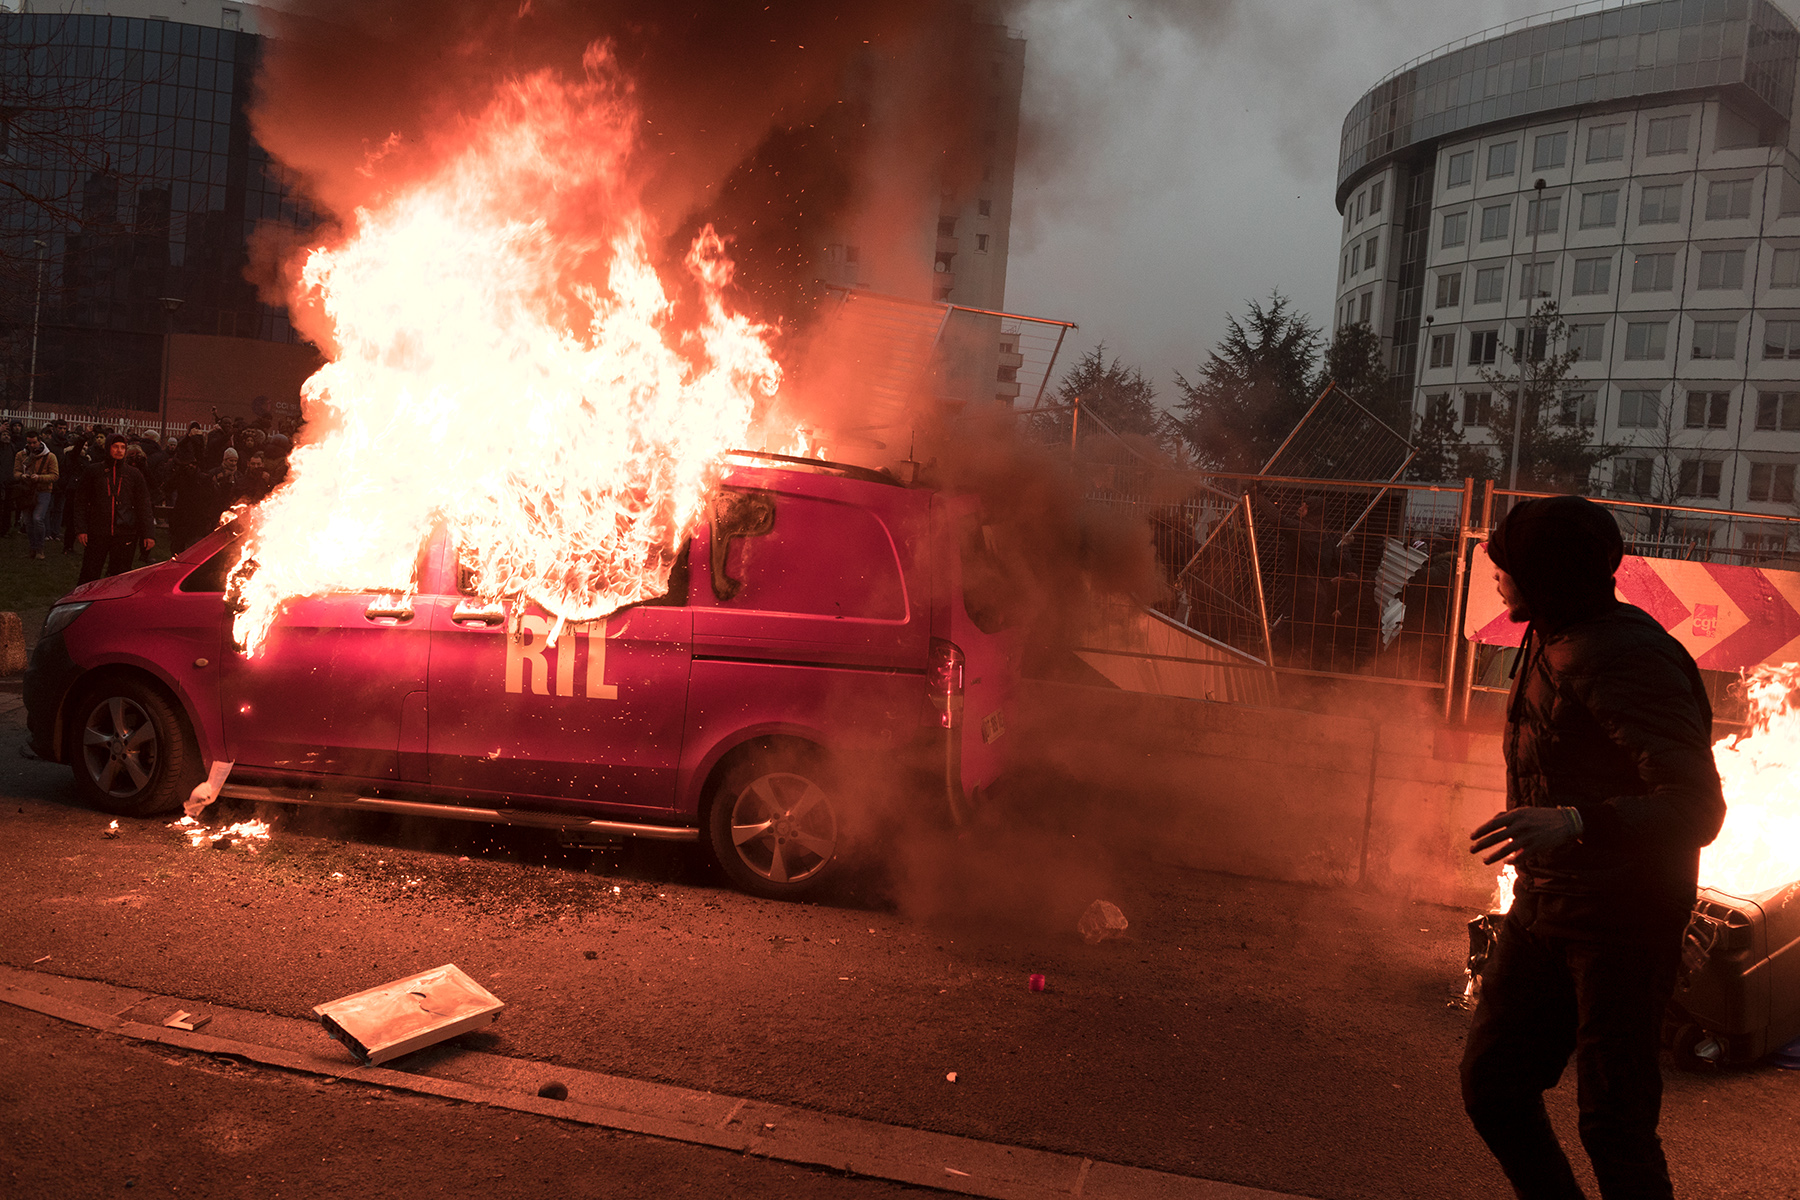 After a peaceful demonstration, other groups of youths clashed with the riot police and burned a RTL radio station van in Bobigny, France on Feb. 11, 2017.